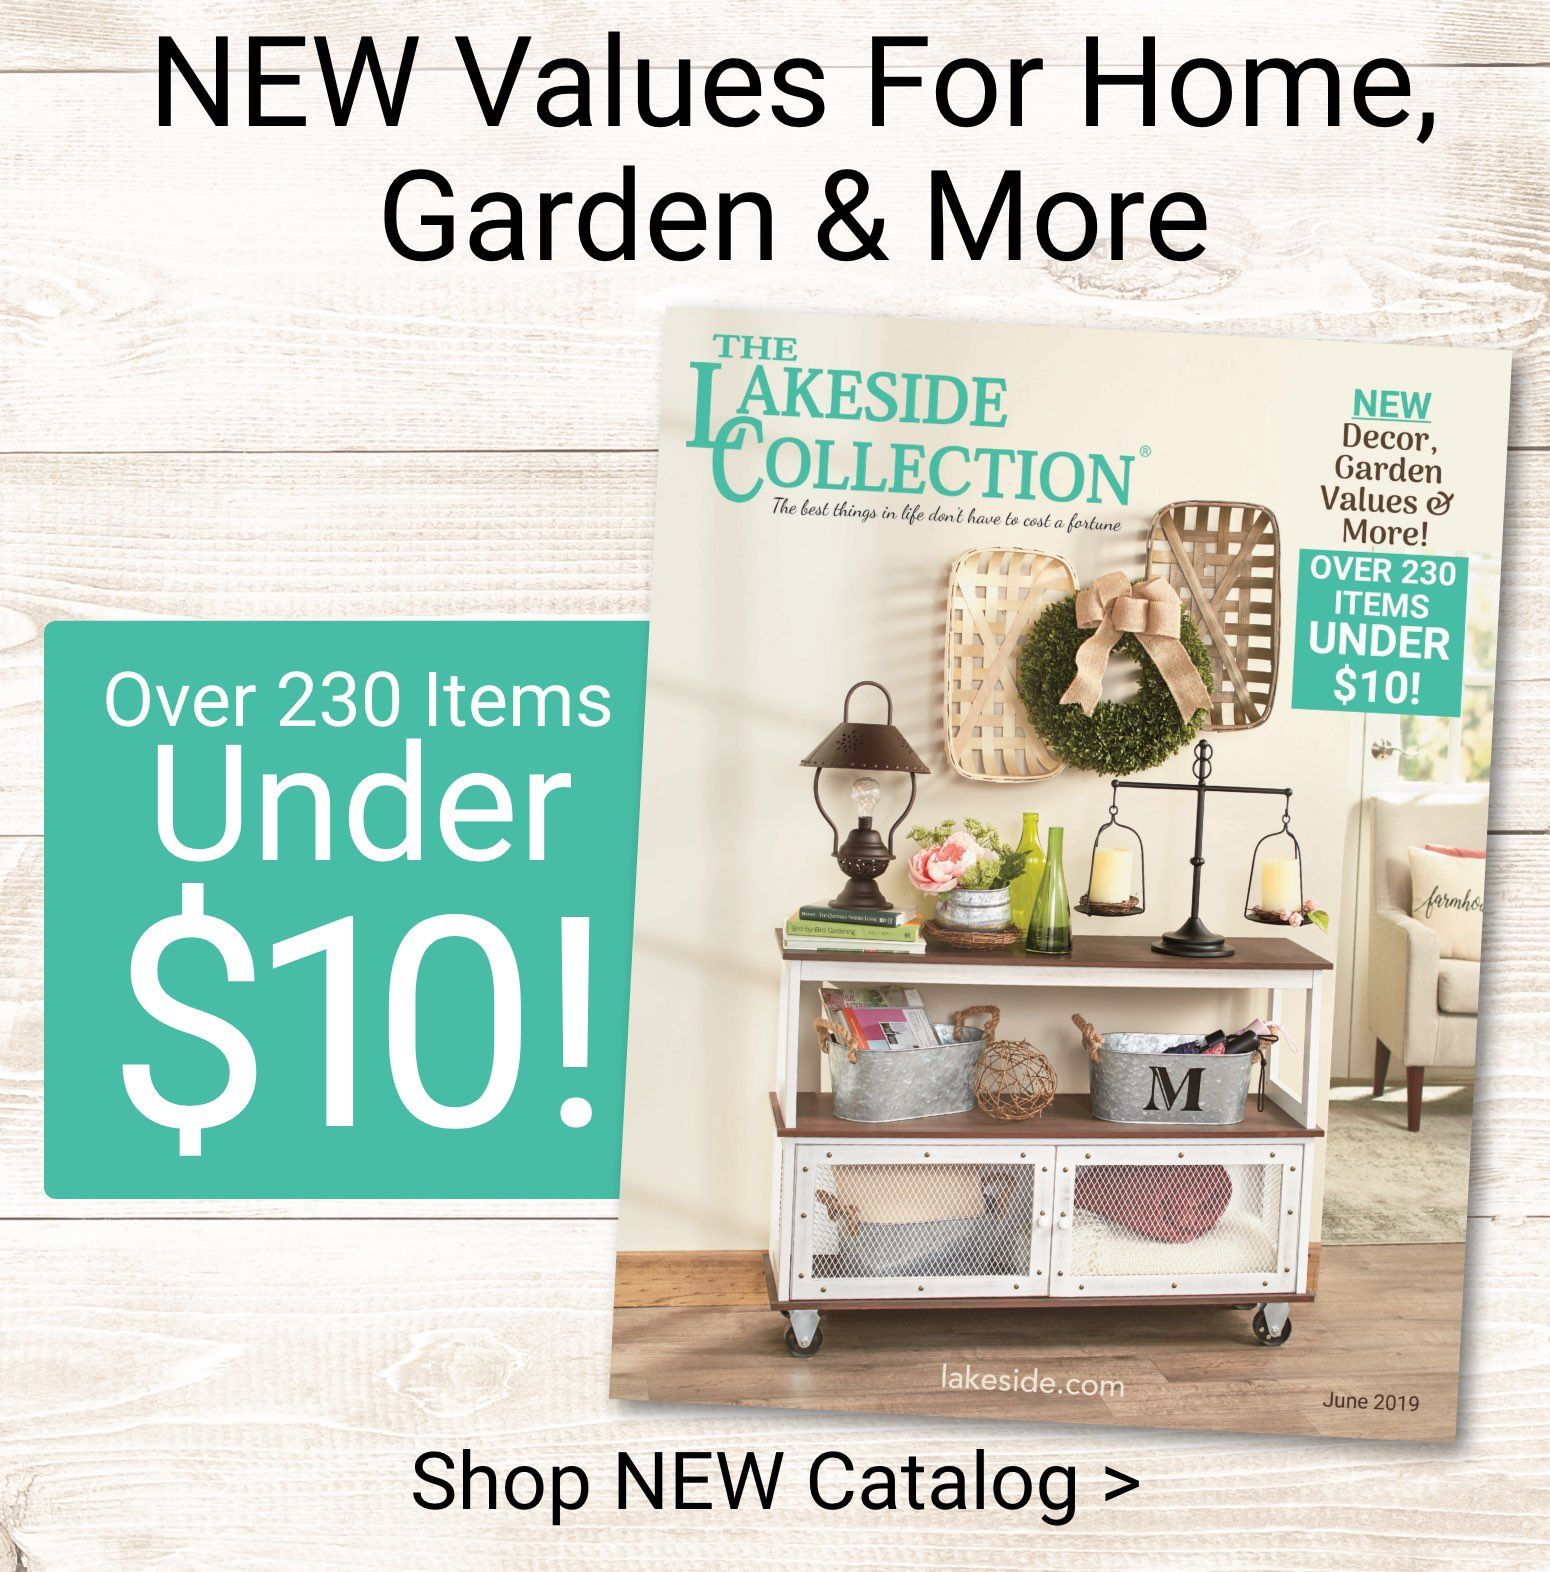 The Lakeside Collection Unique Gifts Home Decor Gift Catalogs Gift Catalog Home Decor Unique Gifts